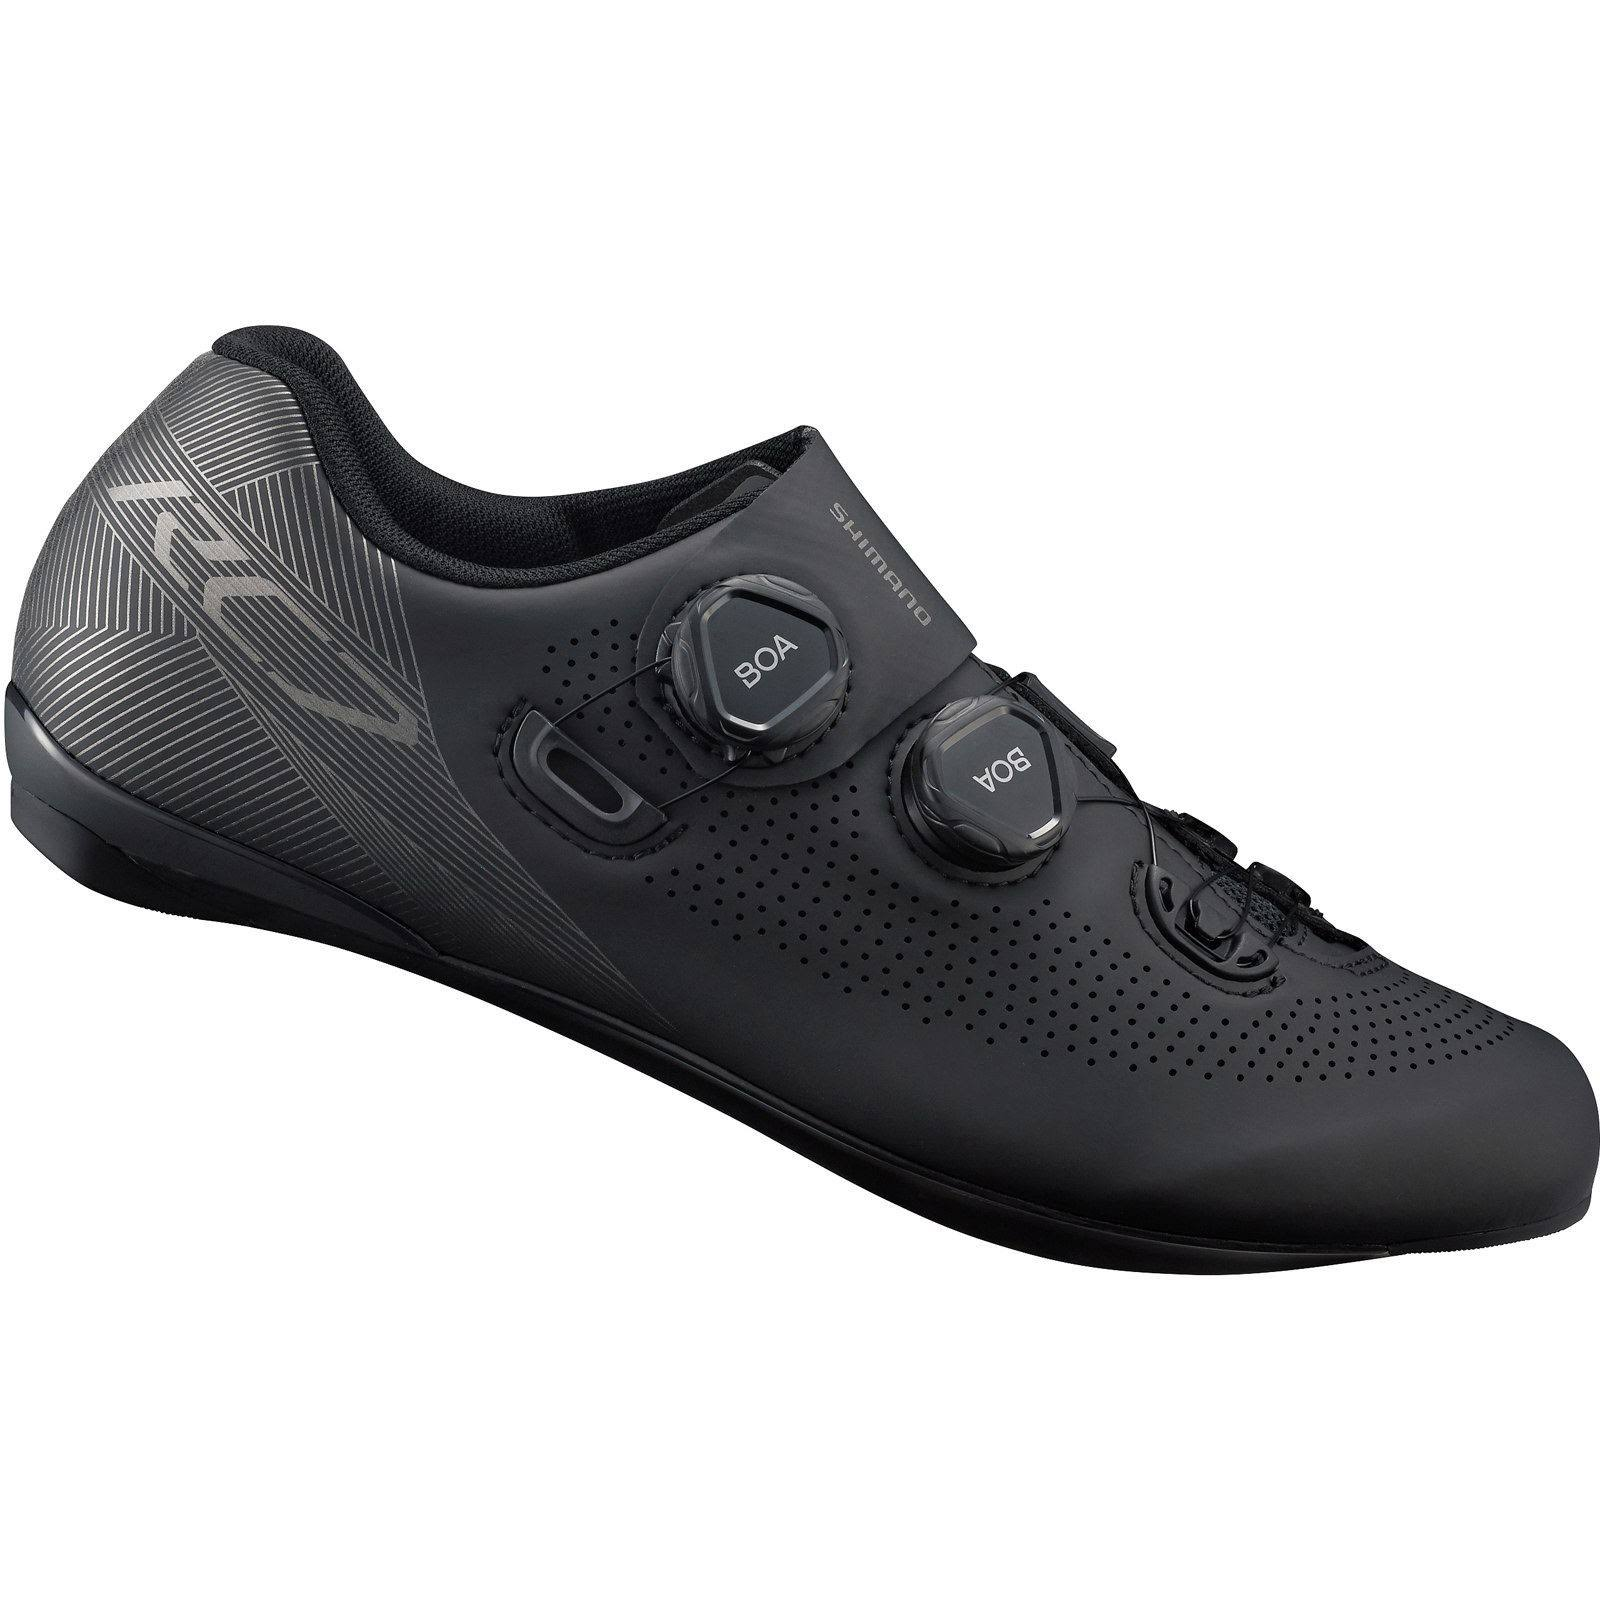 Shimano SH-RC7 Road Shoes Black 45.0